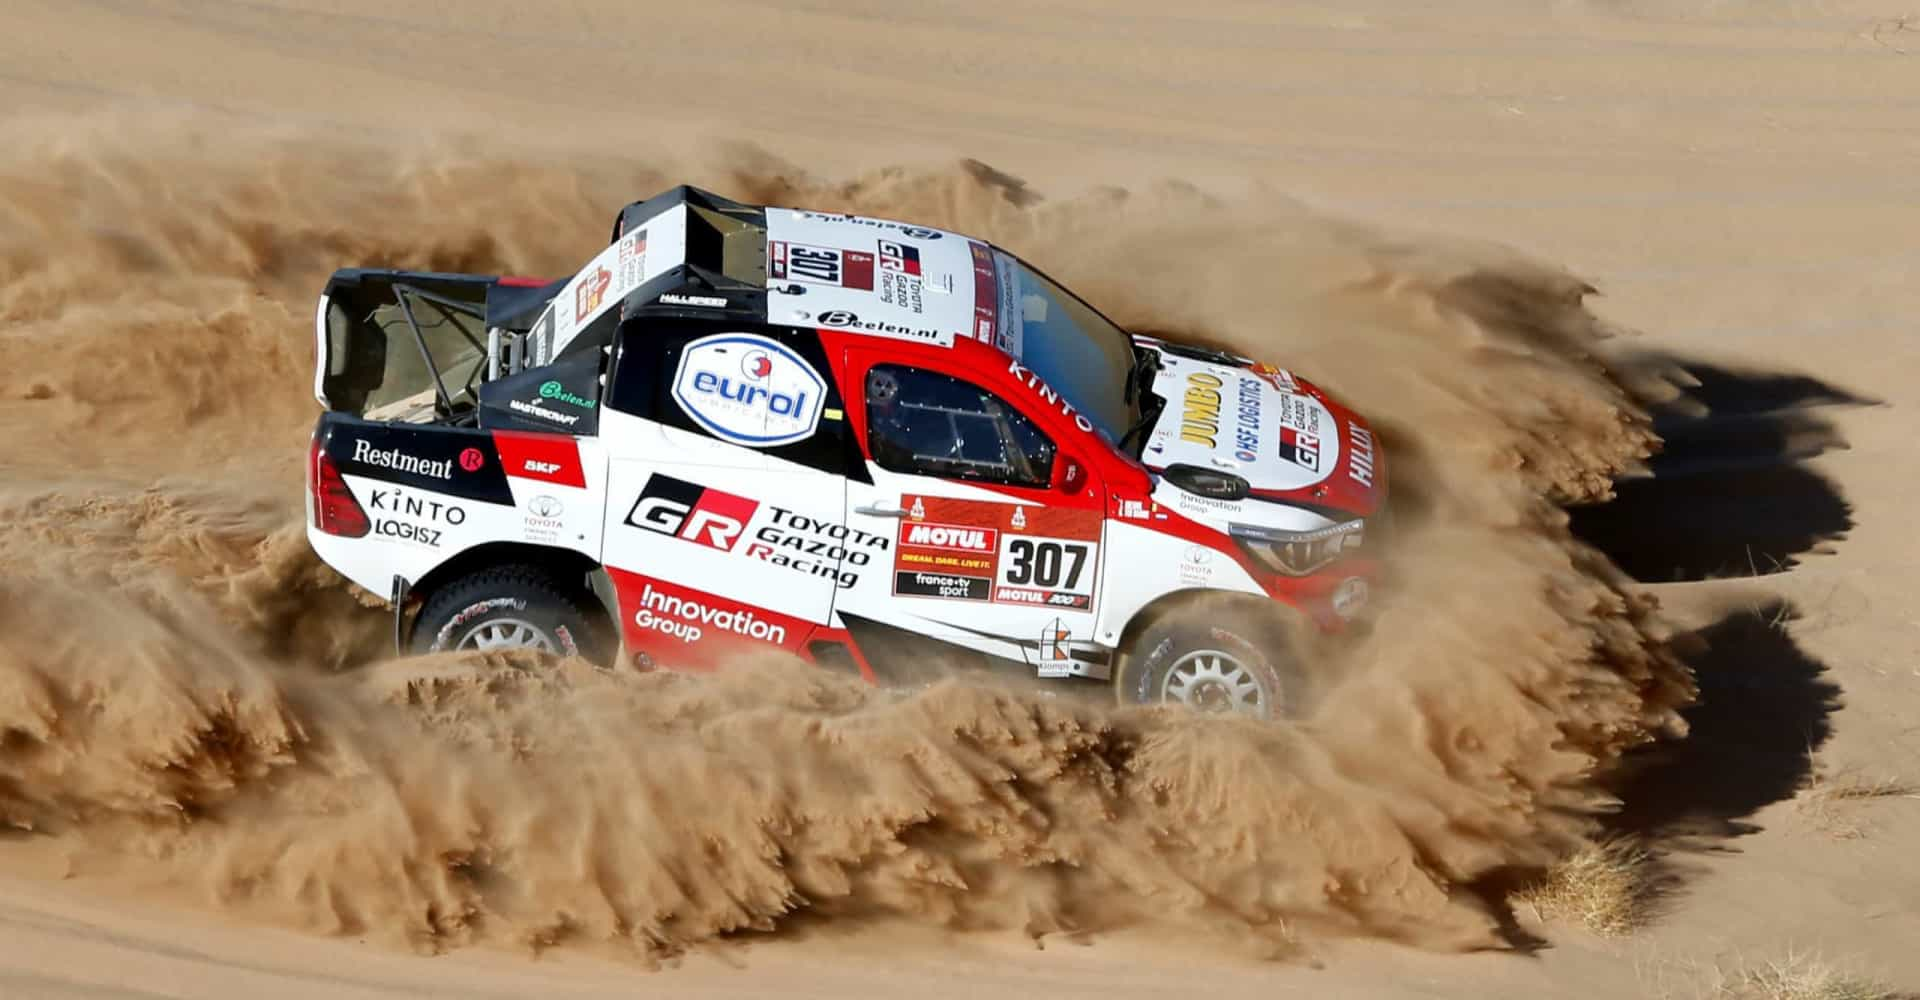 Rallye Dakar: une décennie de course en photos!